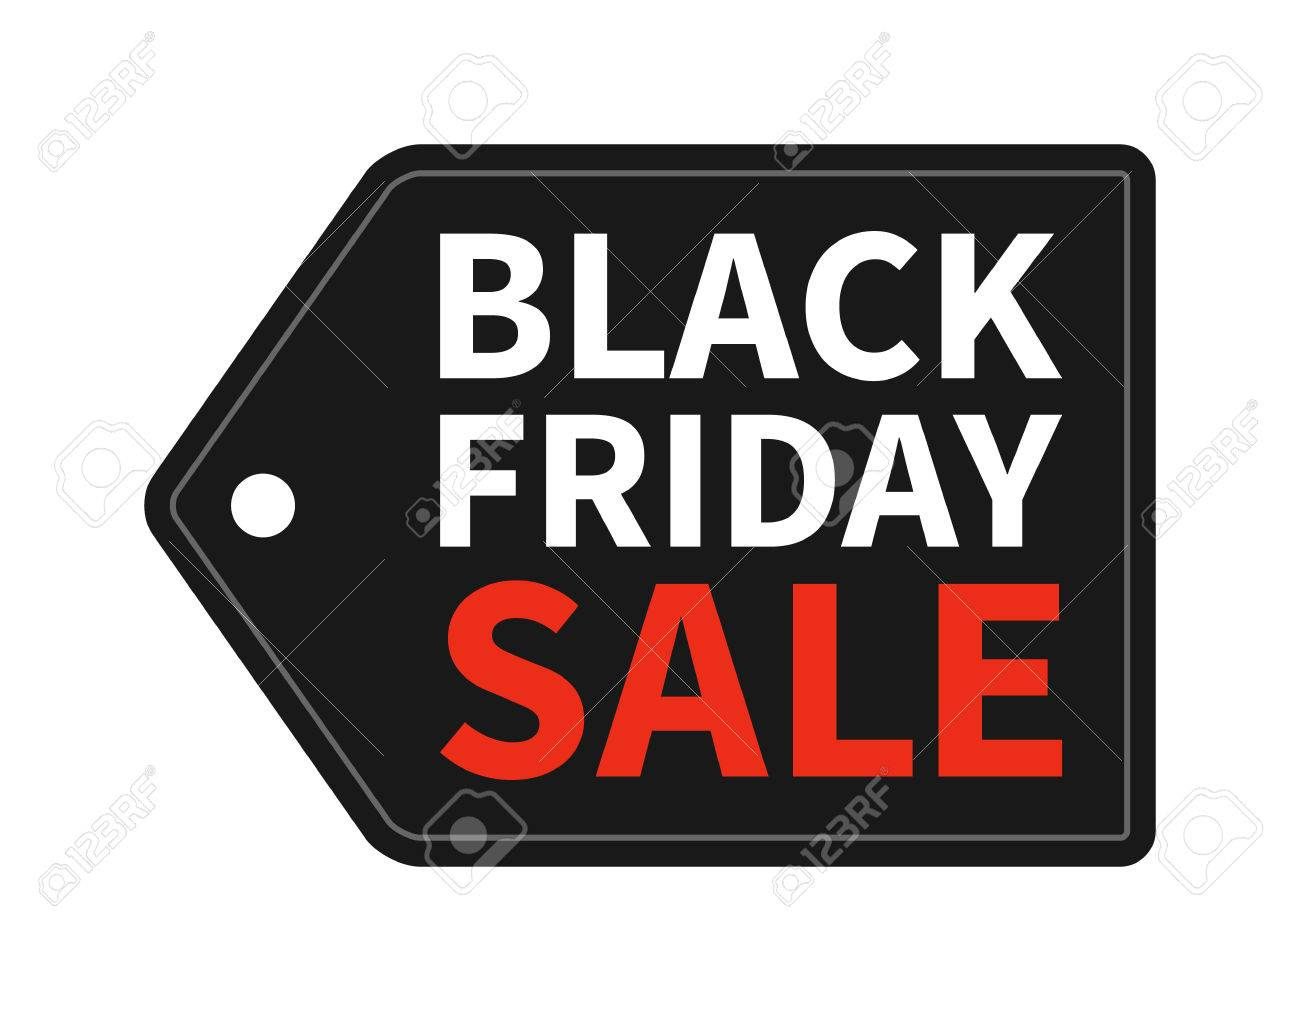 Black Friday Sale hang tag promotion Stock Vector - 43923146